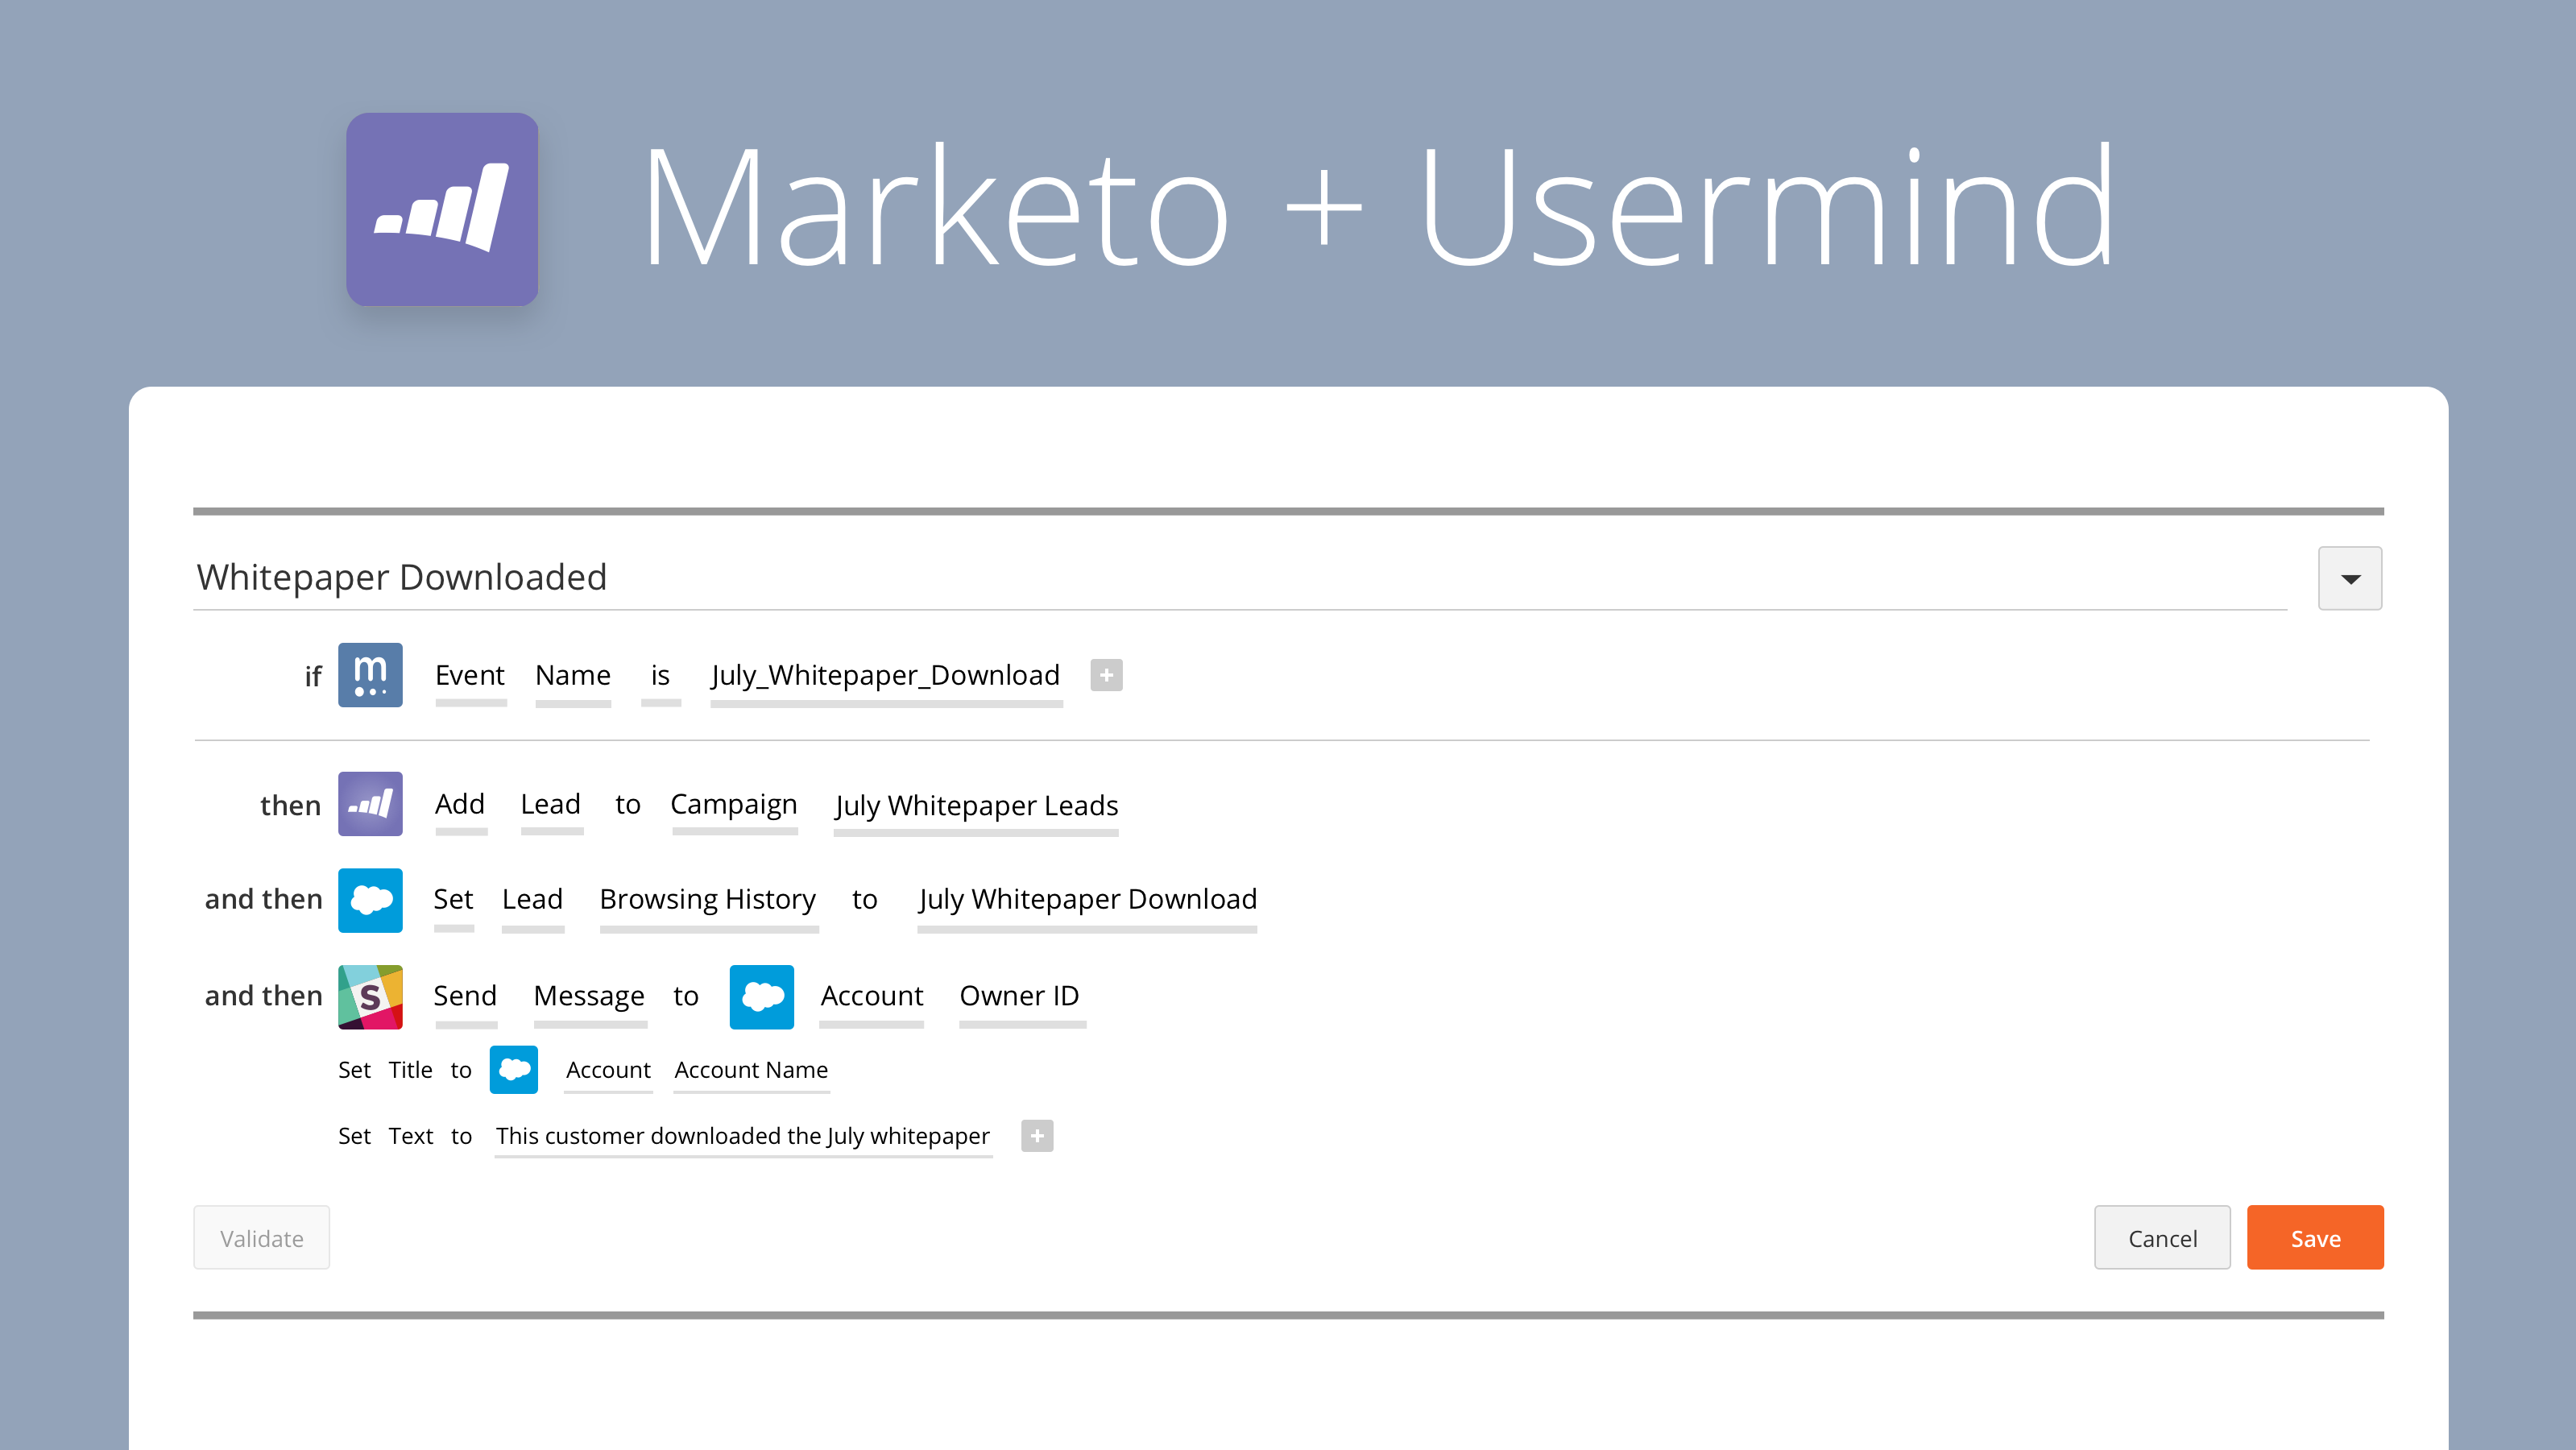 Add Value to Your Marketing Automation with our Marketo Integration